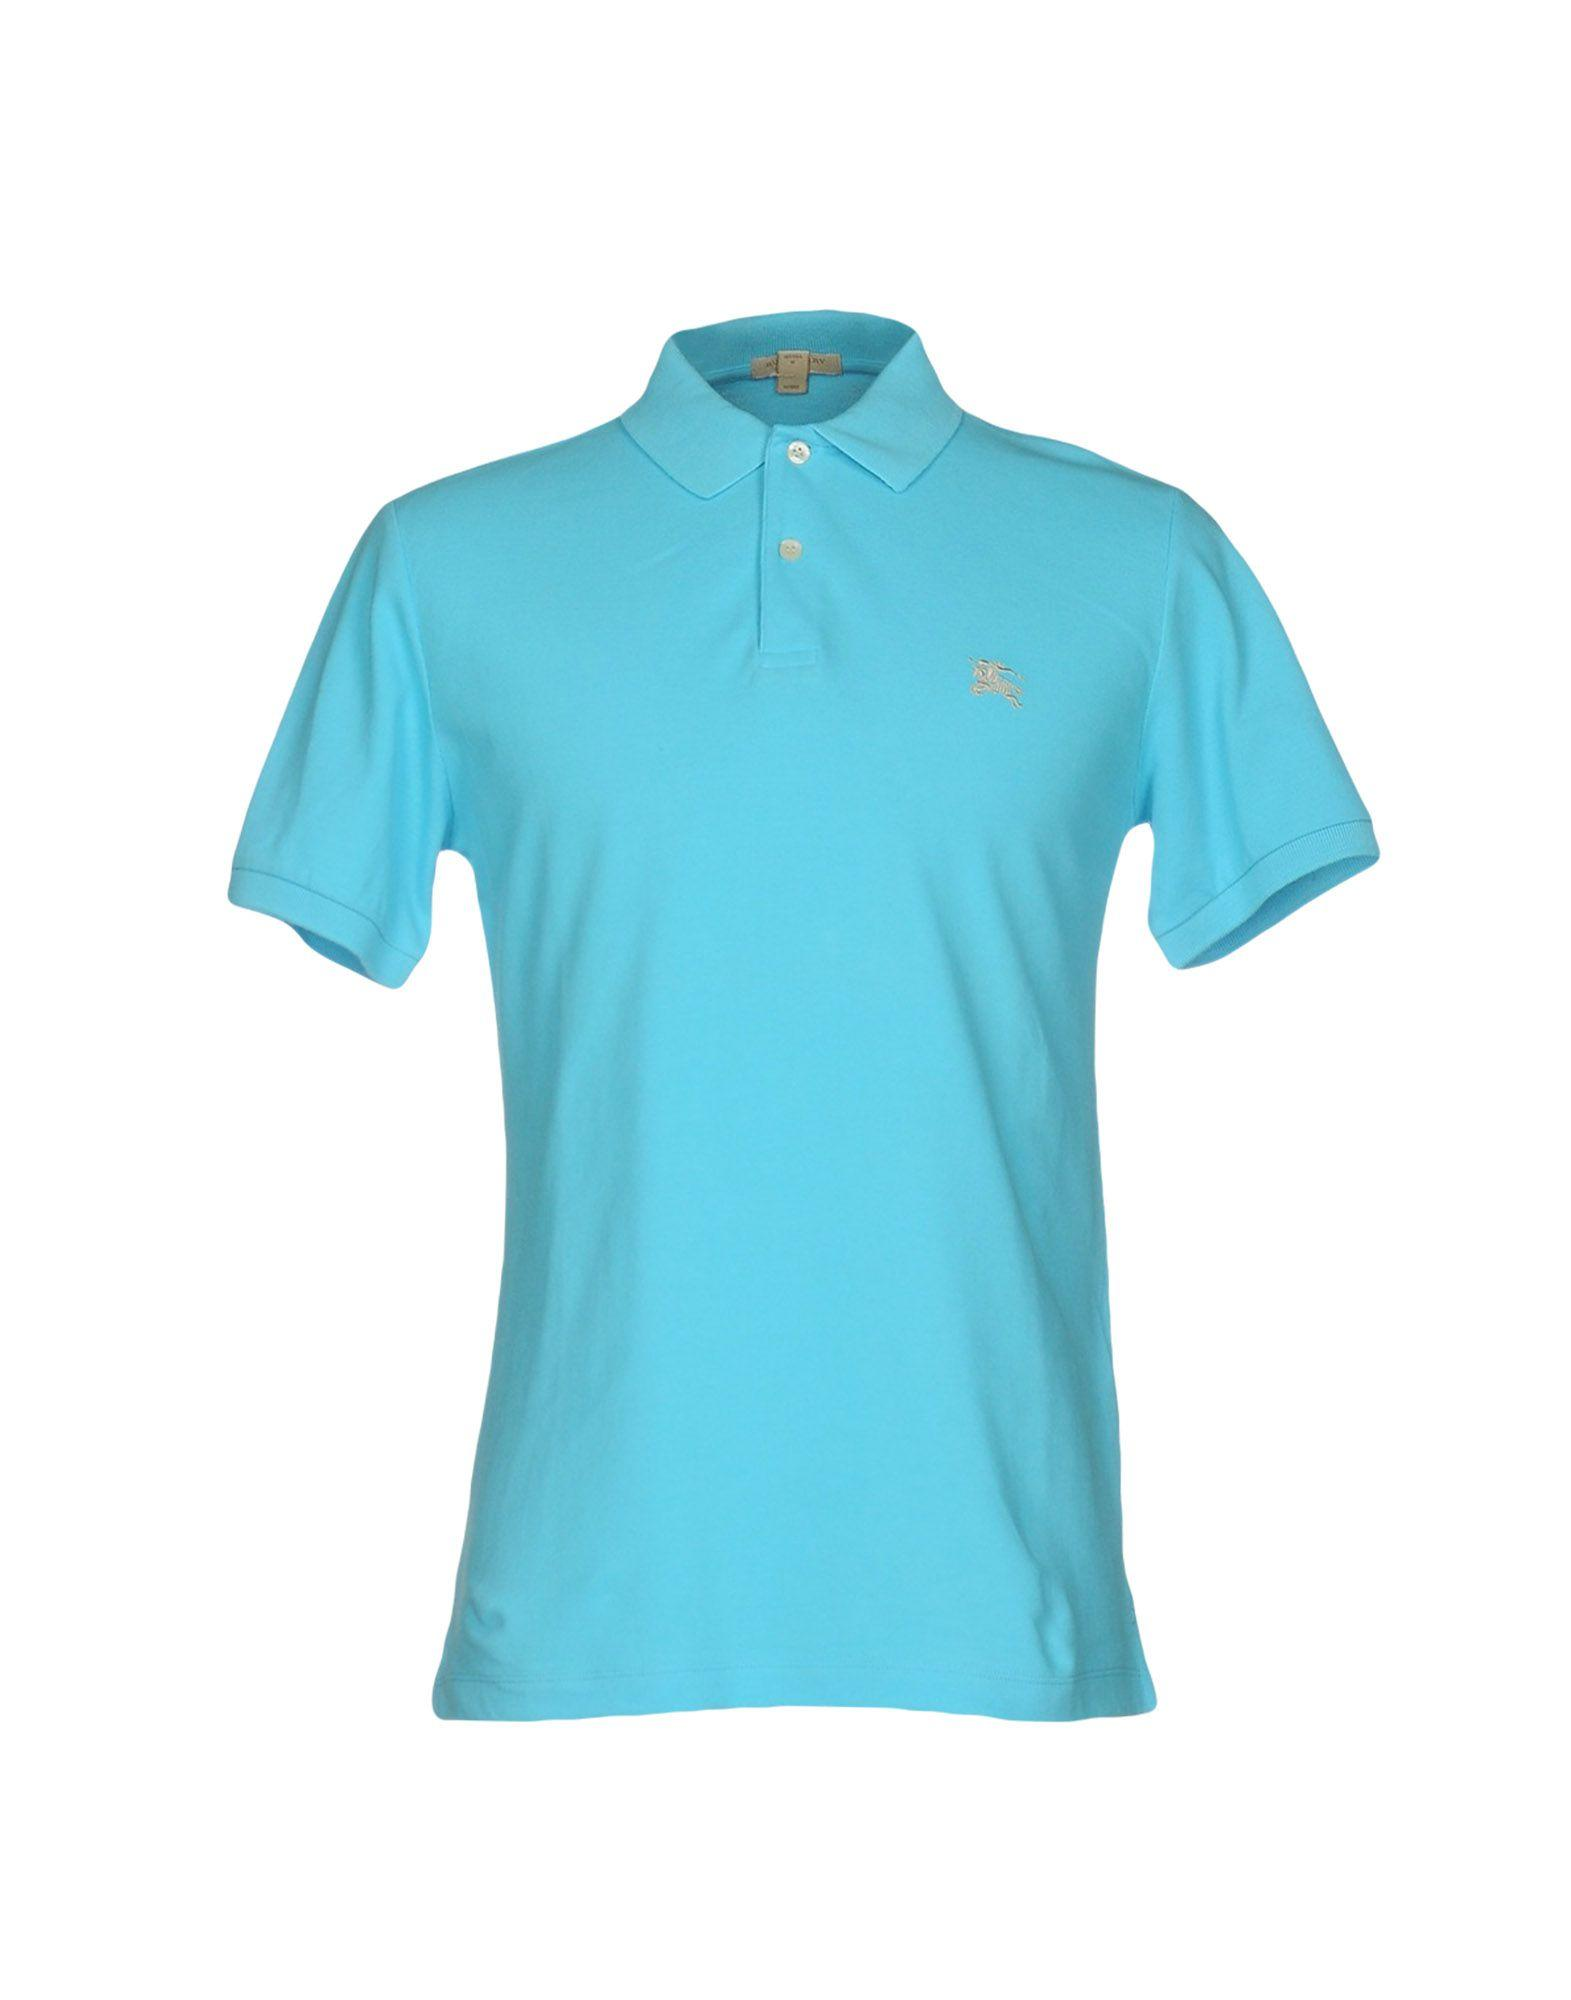 Burberry Brit Polo Shirt In Blue For Men Lyst